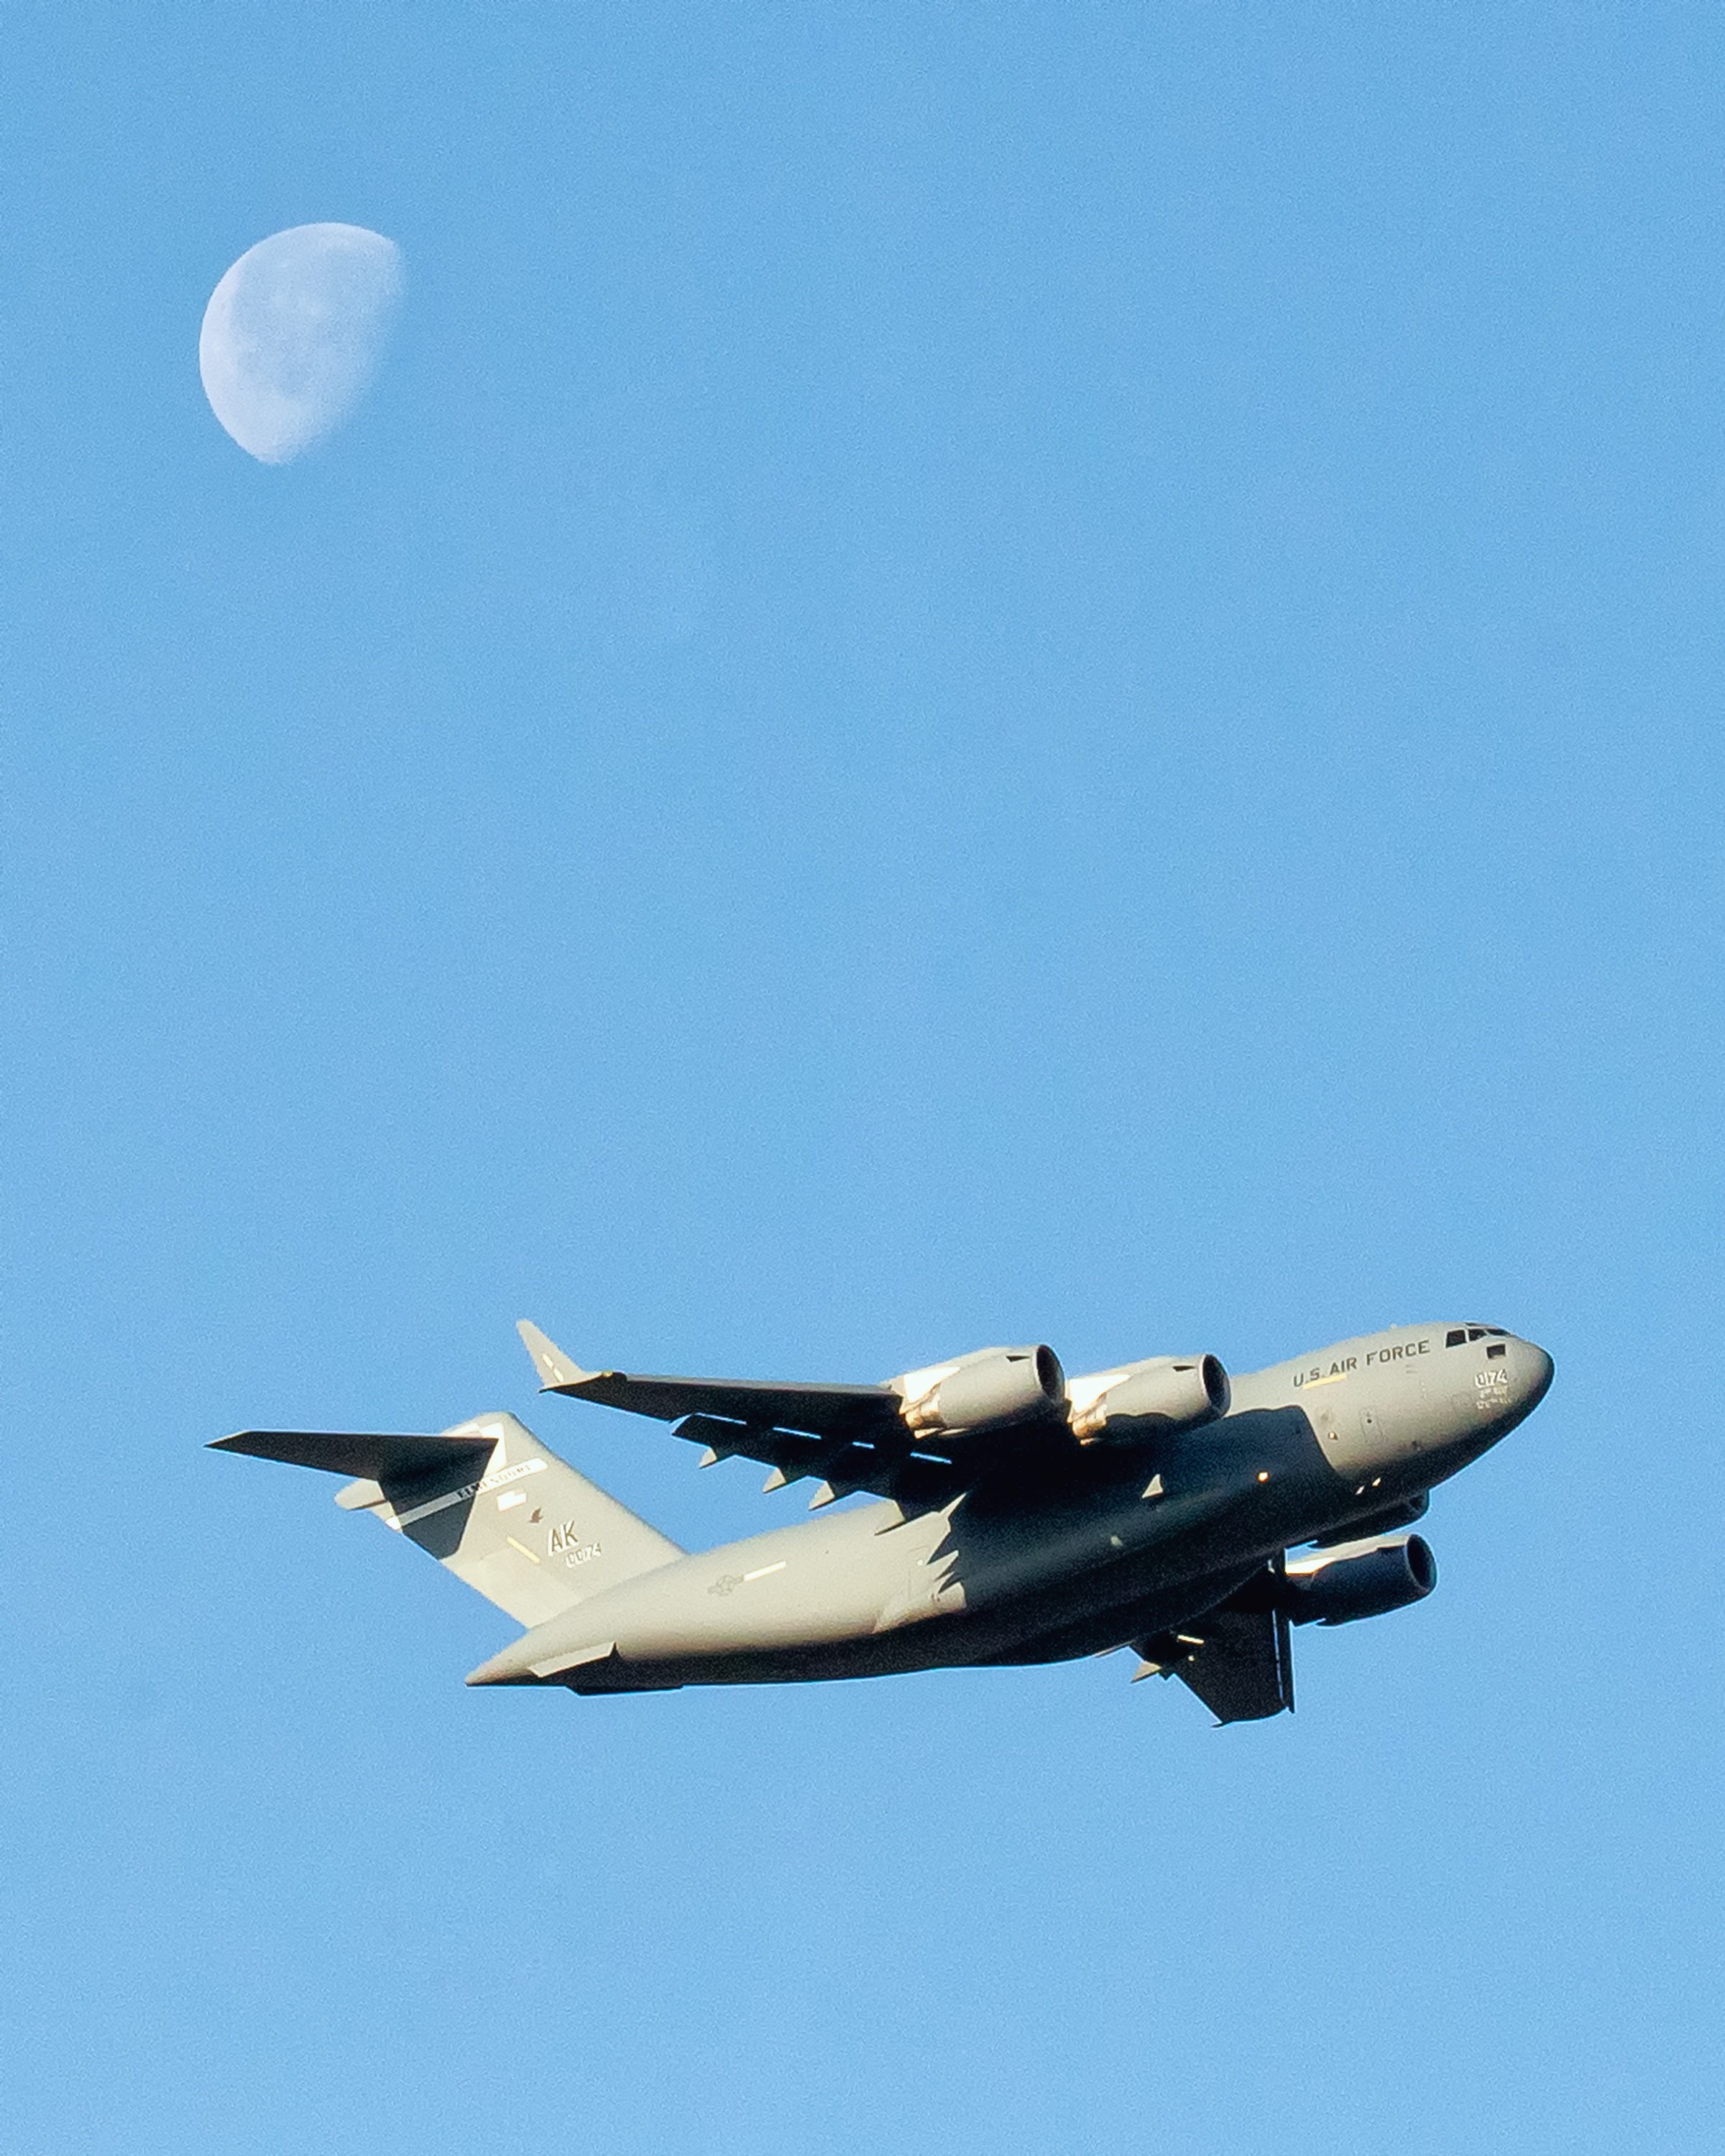 Moon and Machine: US Air Force C-17 Jet Creates Lunar Scene Over Japan (Photo)